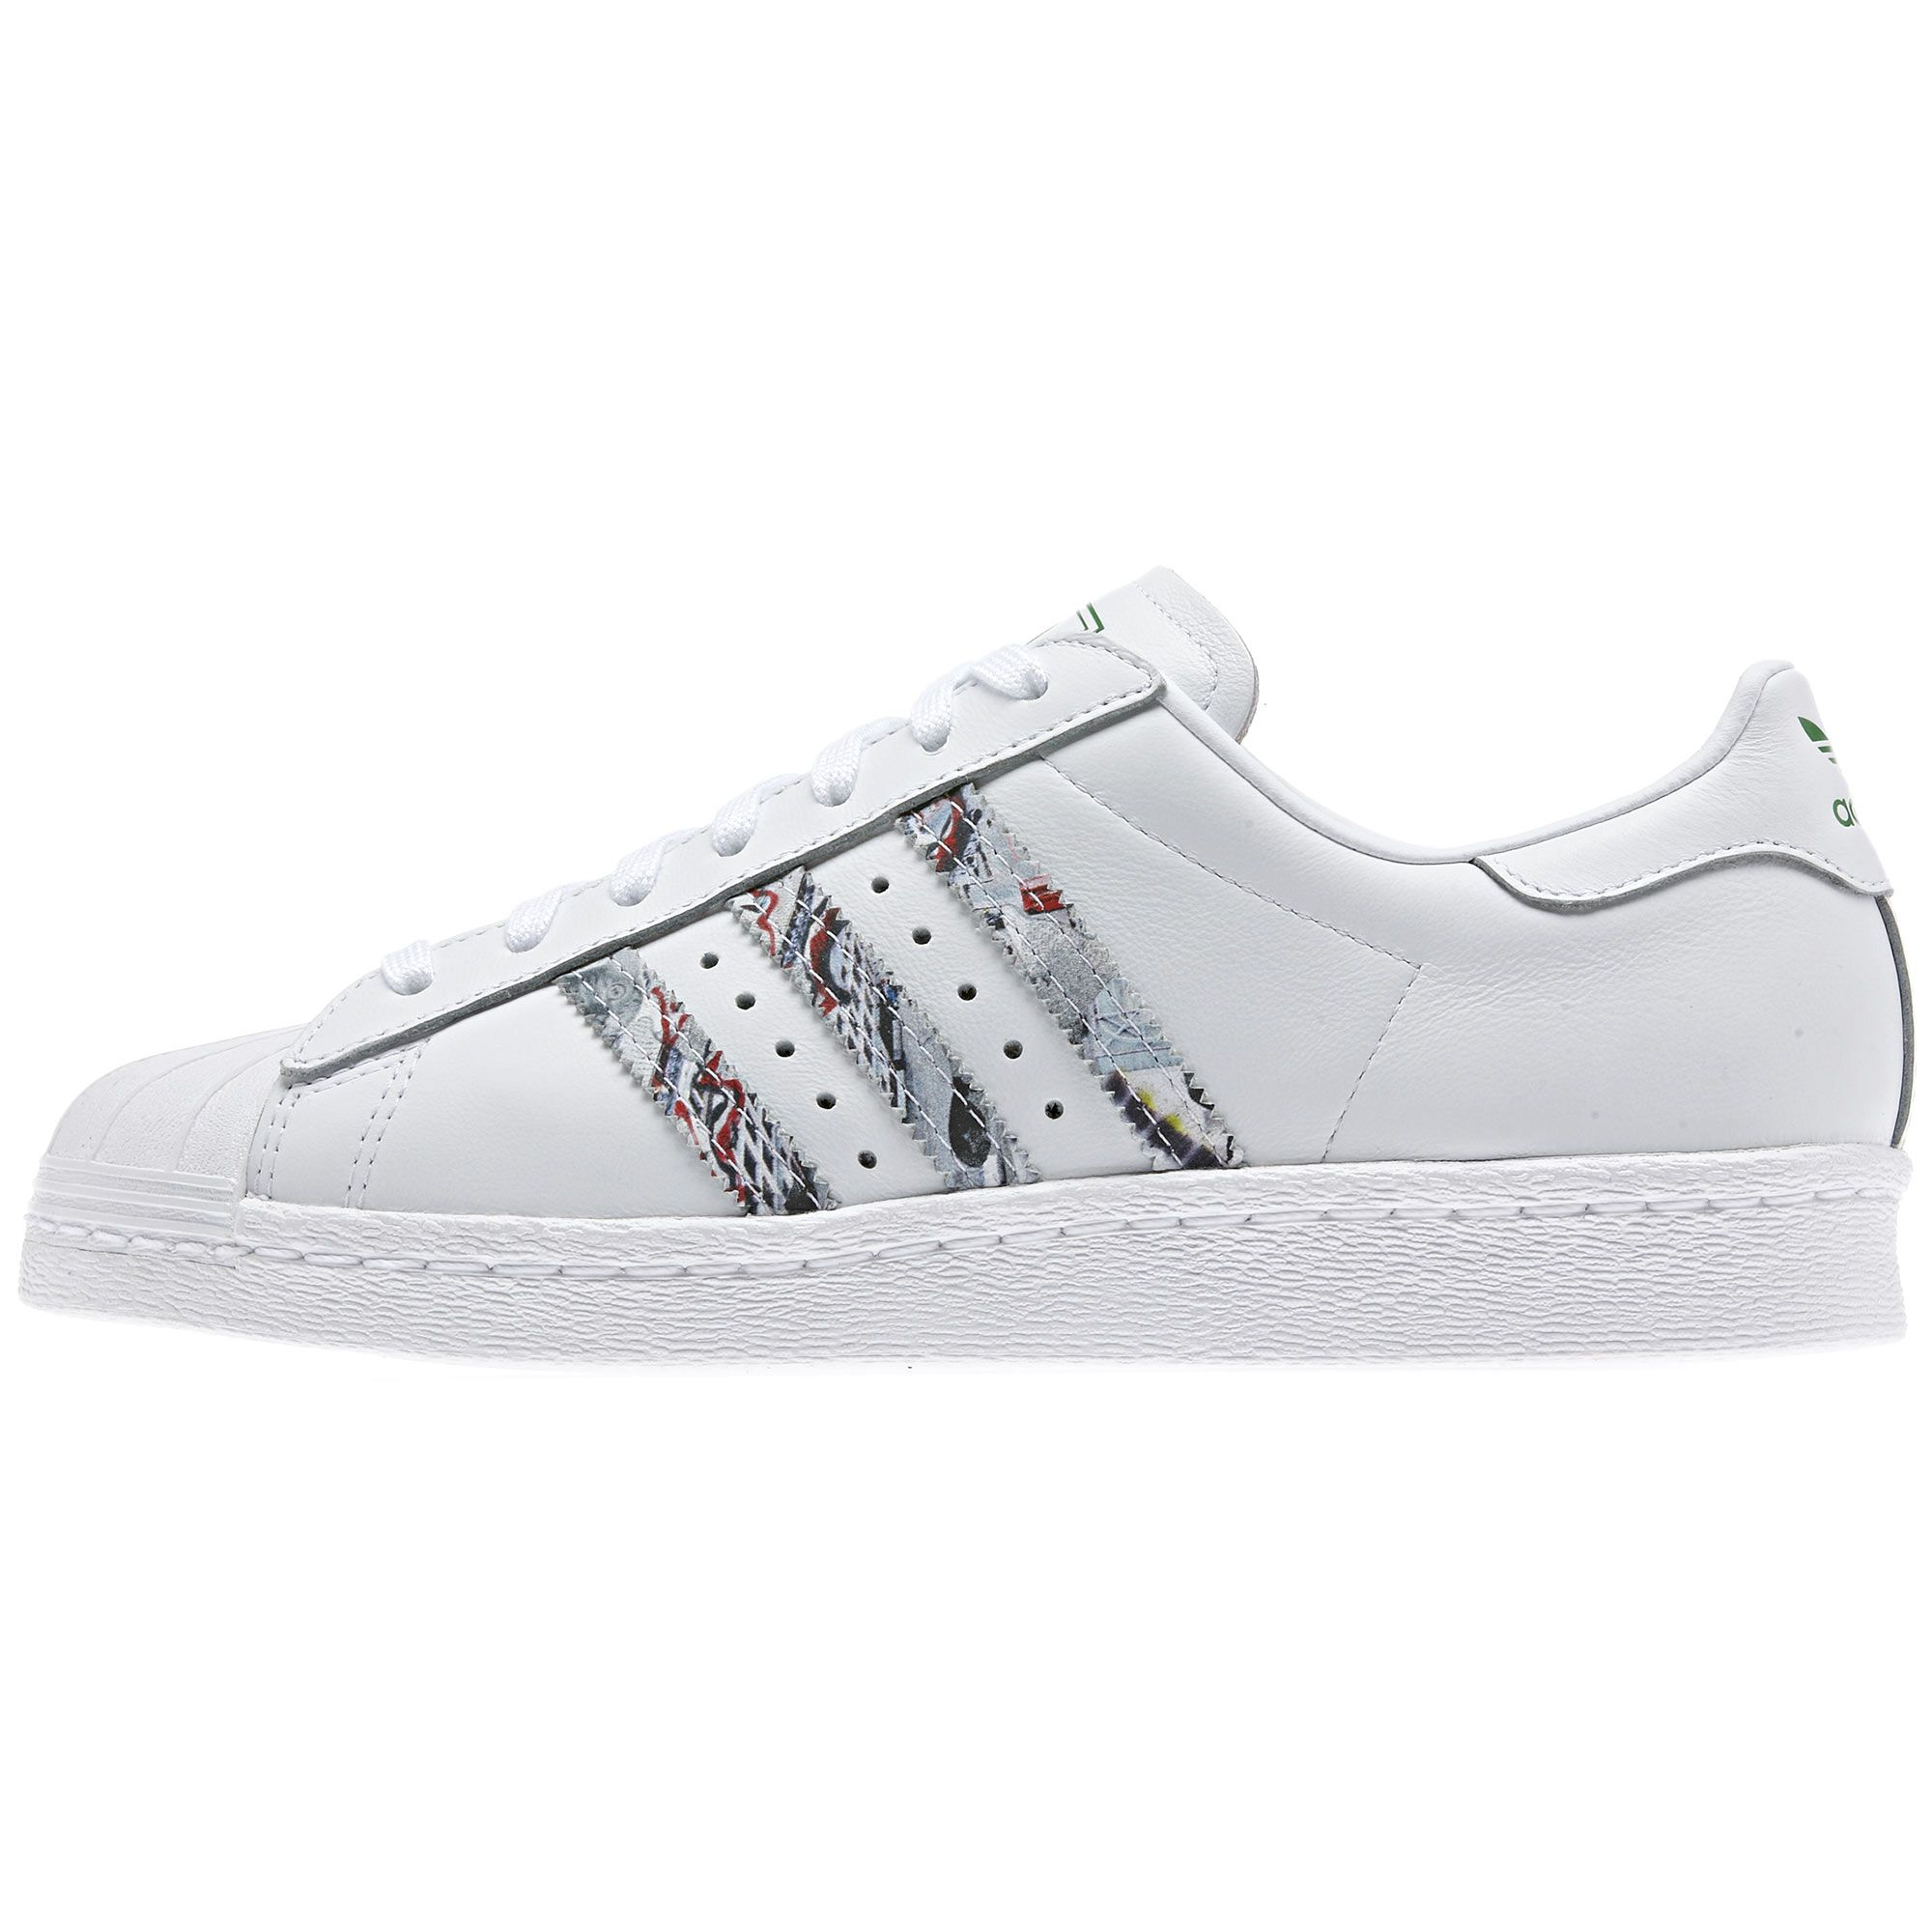 adidas Women's adidas x Topshop Superstar 80s Shoes | adidas